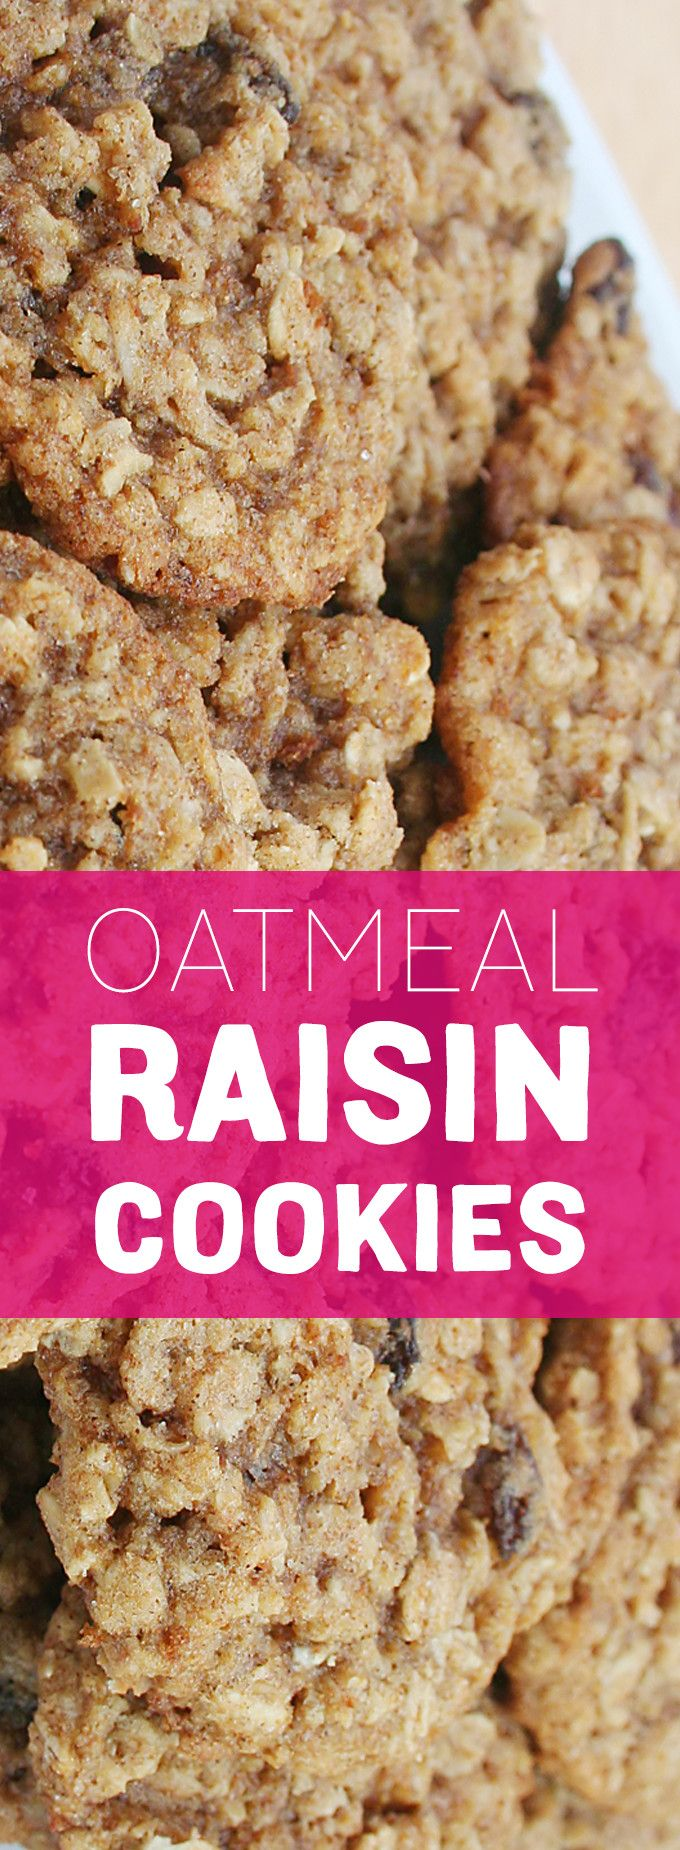 We take this classic recipe and make it our own naturally sweetened oatmeal raisin cookie the kids will love!